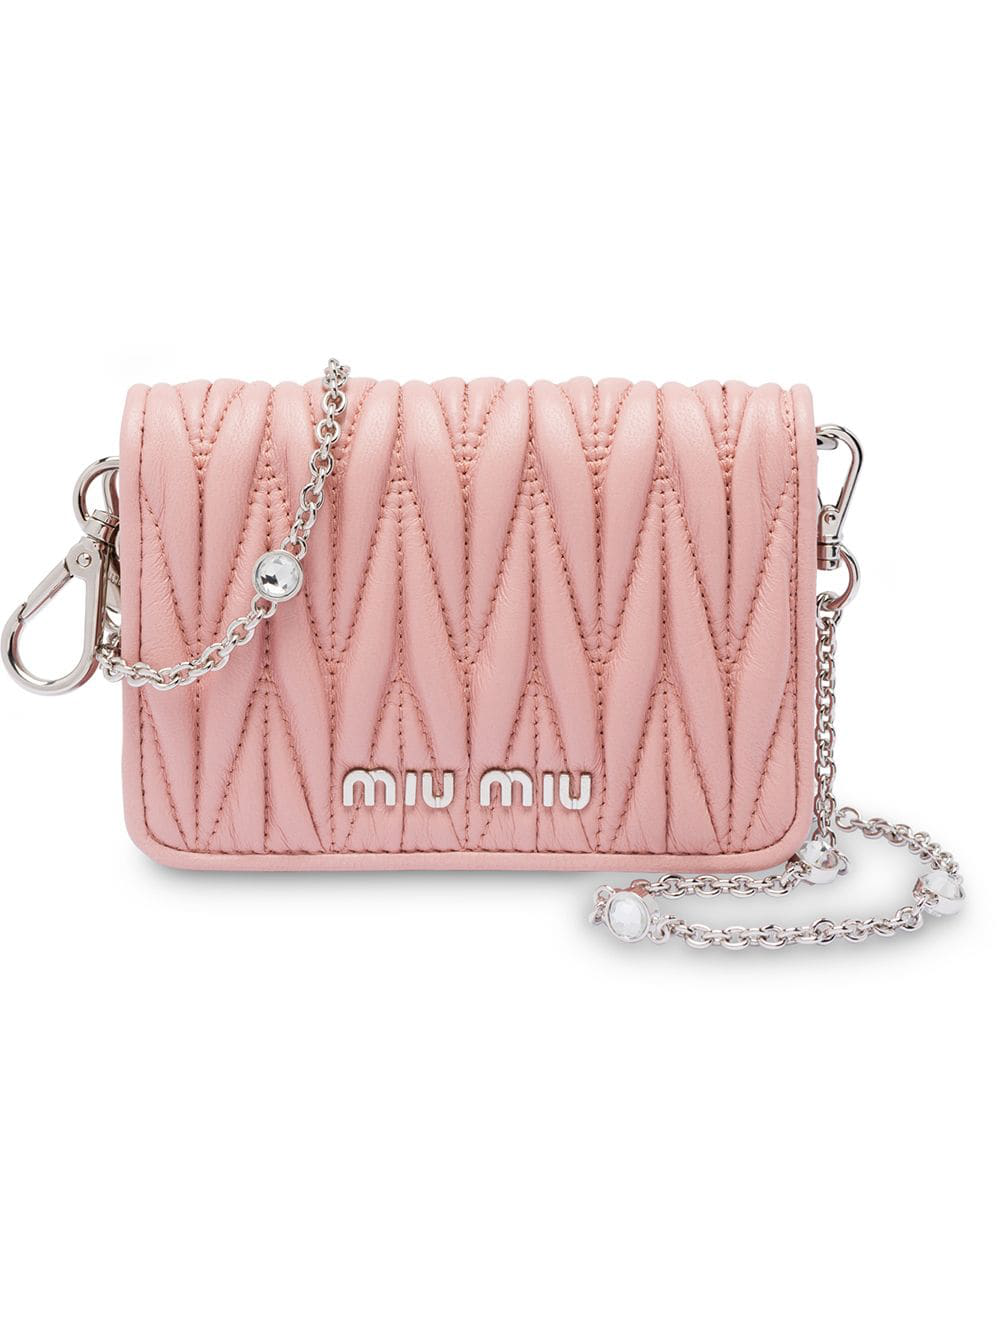 d522e0c70ca Miu Miu Matelassé Mini Shoulder Bag - Pink